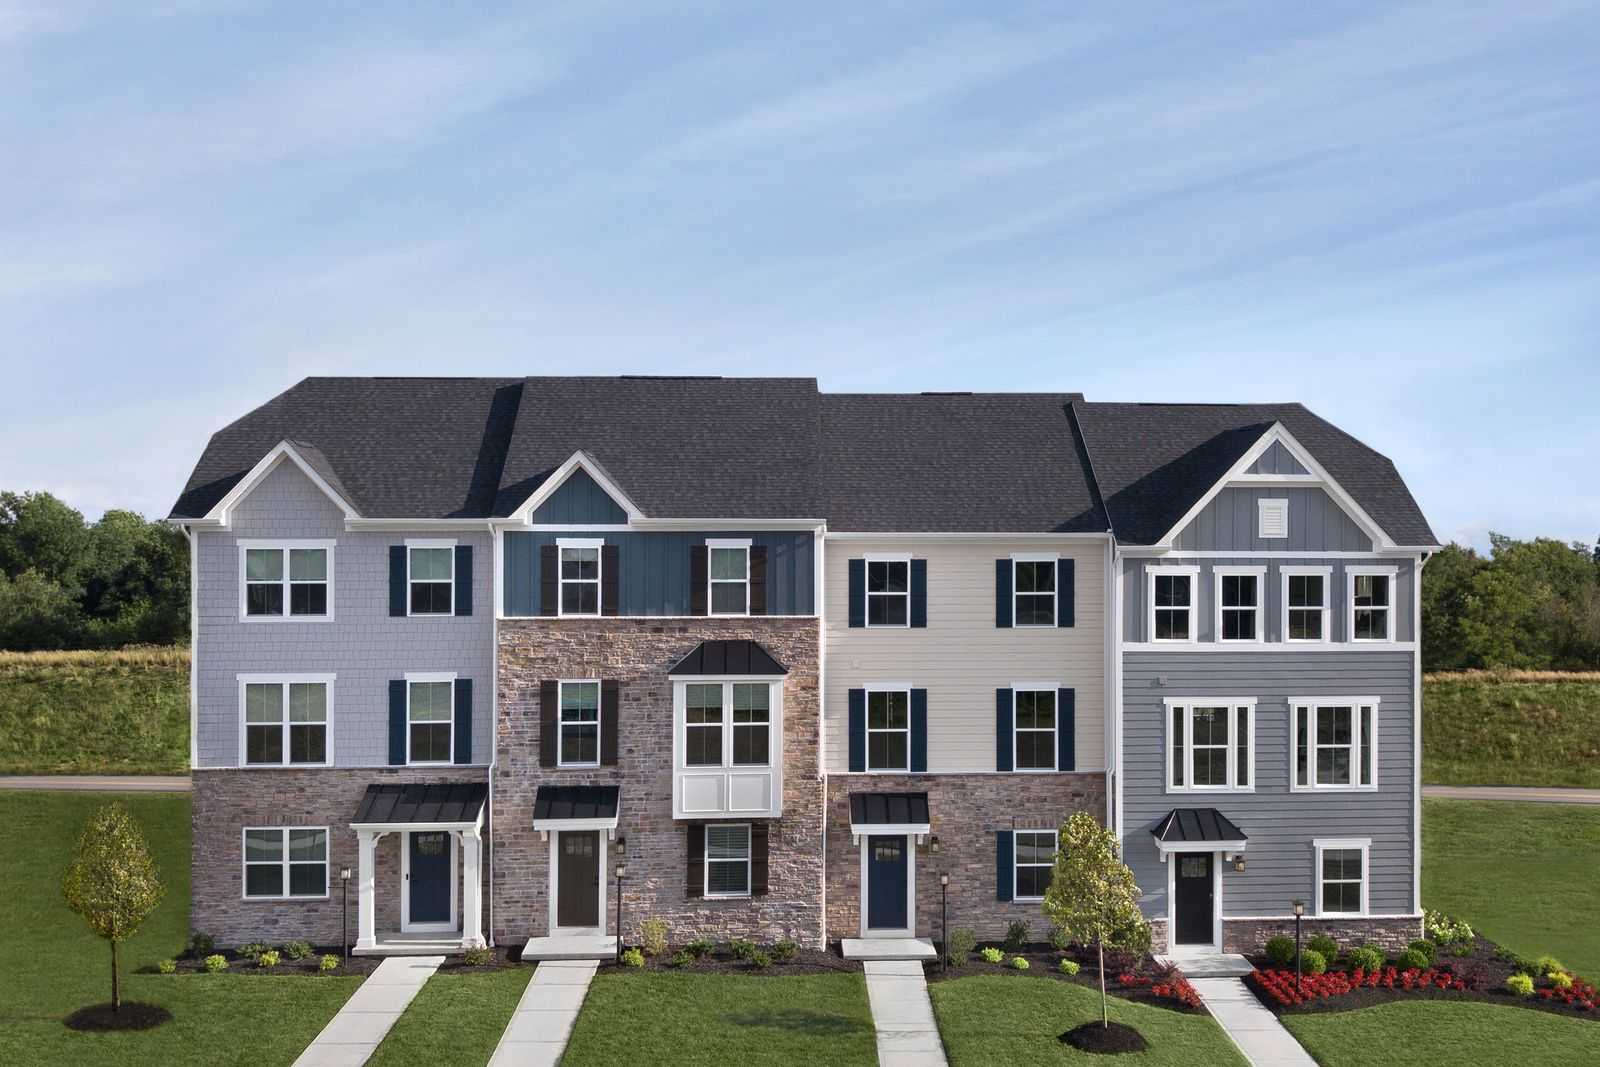 Welcome to Laurel Grove:The lowest price new homes in Pine Township with planned pool, clubhouse, & walking trails. Luxury open concept townhomes.Click here to schedule your visit!